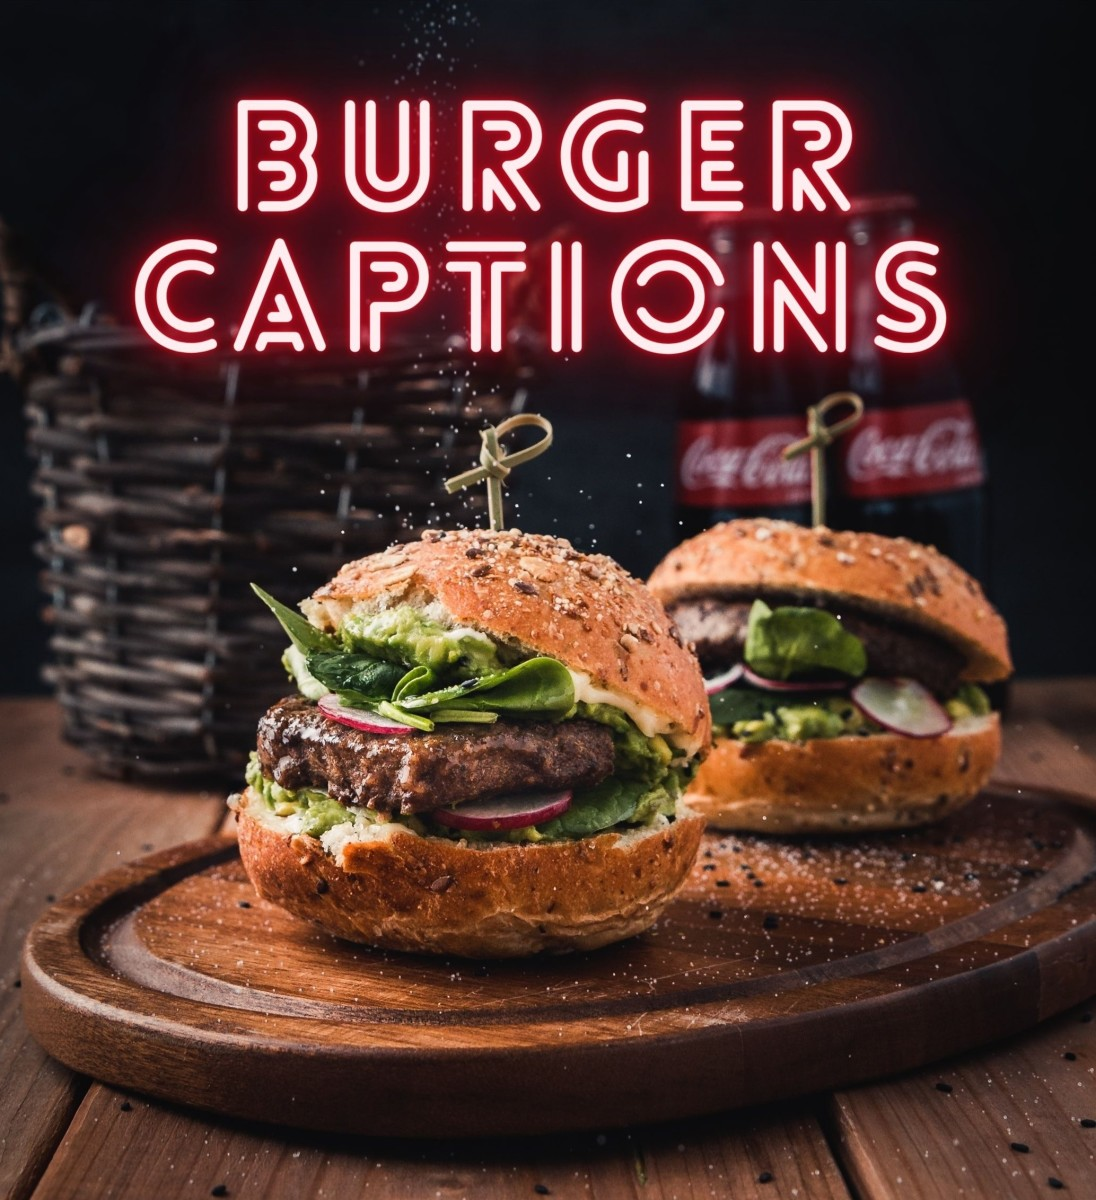 Burger Quotes and Caption Ideas